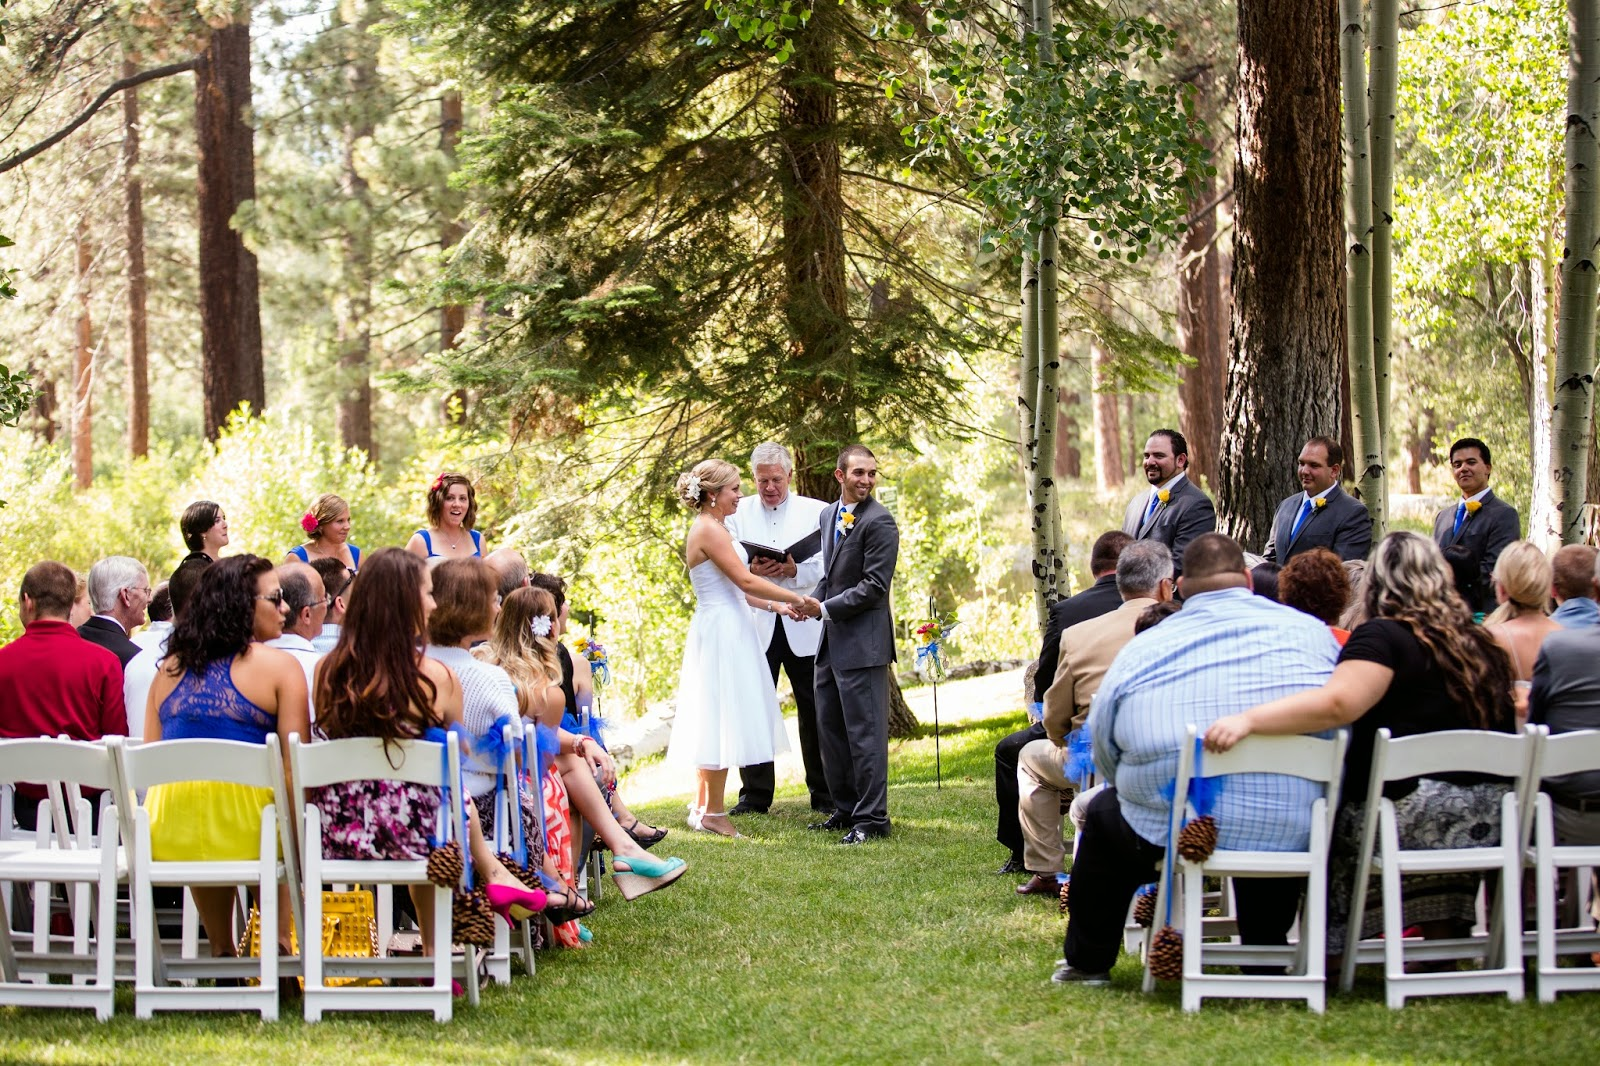 forest wedding ceremony // Huong Forrest Photography // Take the Cake Event Planning